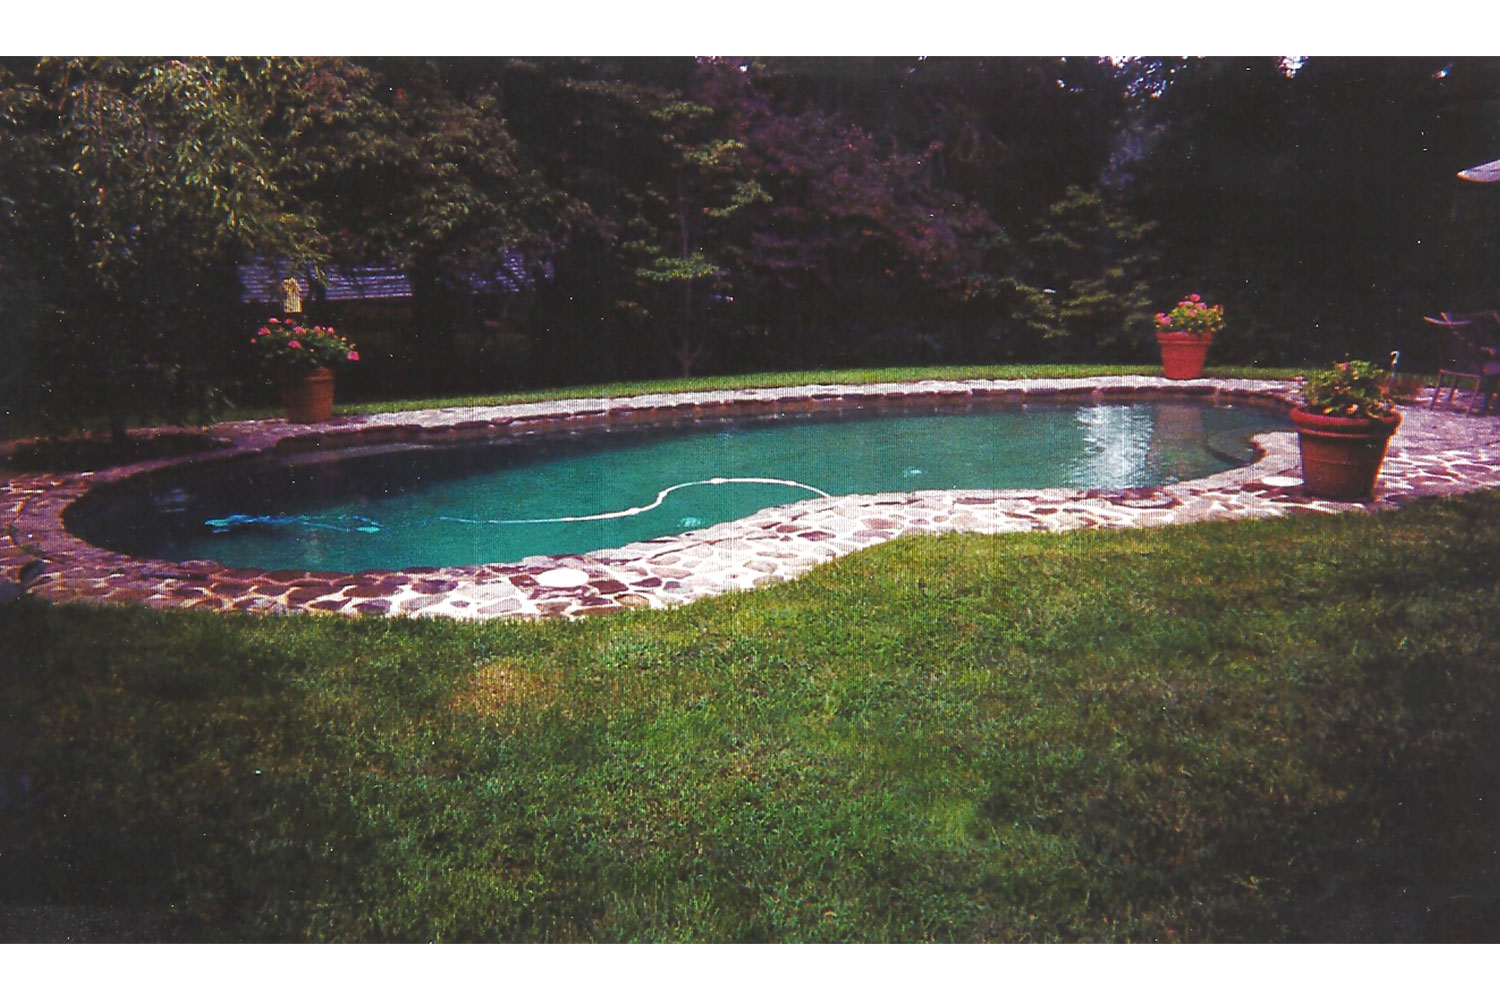 Renovation: Stone Coping Tile, New Hope, Bucks County, PA